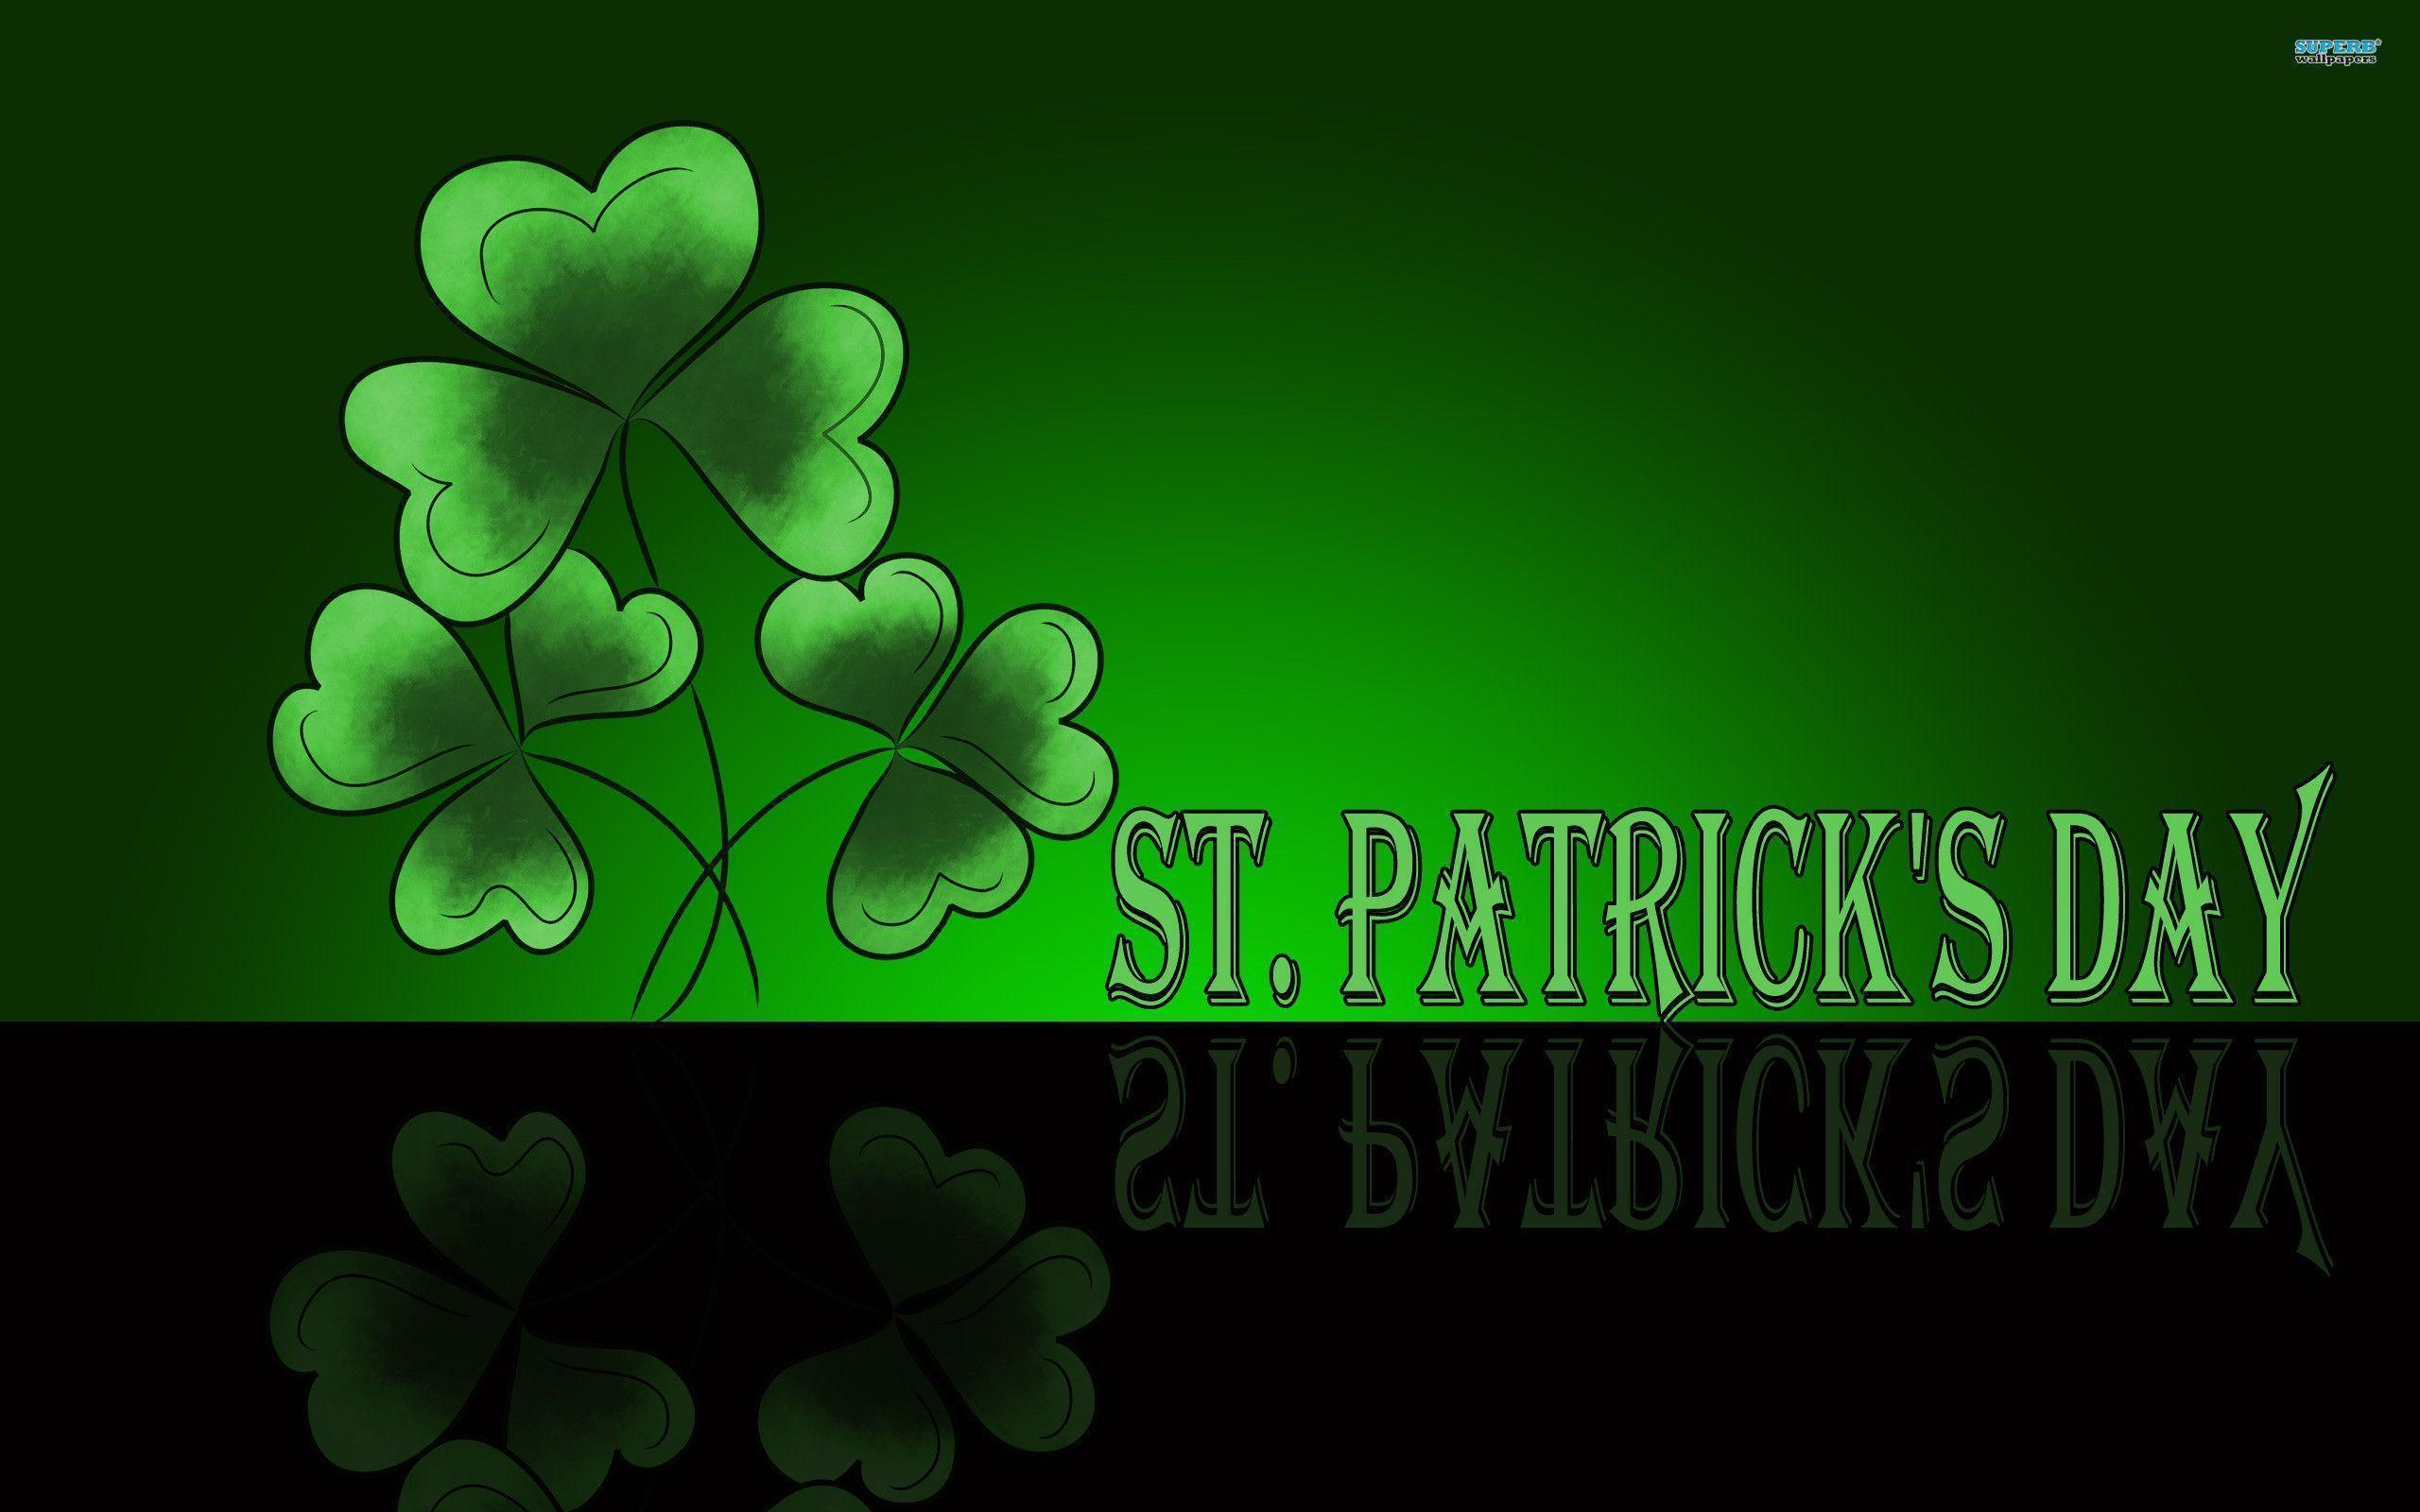 Wallpapers For > Funny St Patricks Day Wallpapers